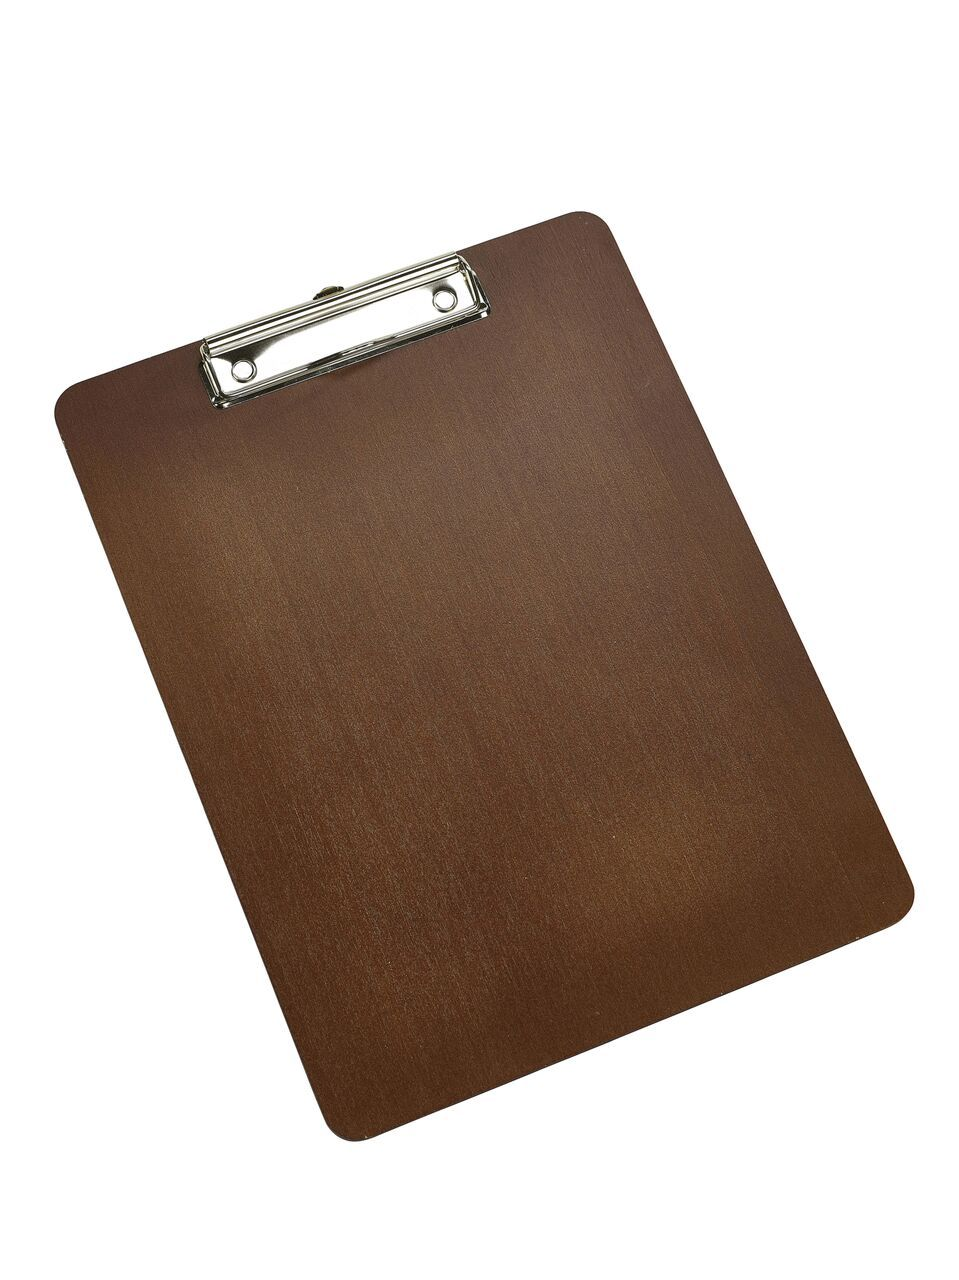 Wooden Menu Clipboard A4 24x32x0.6cm